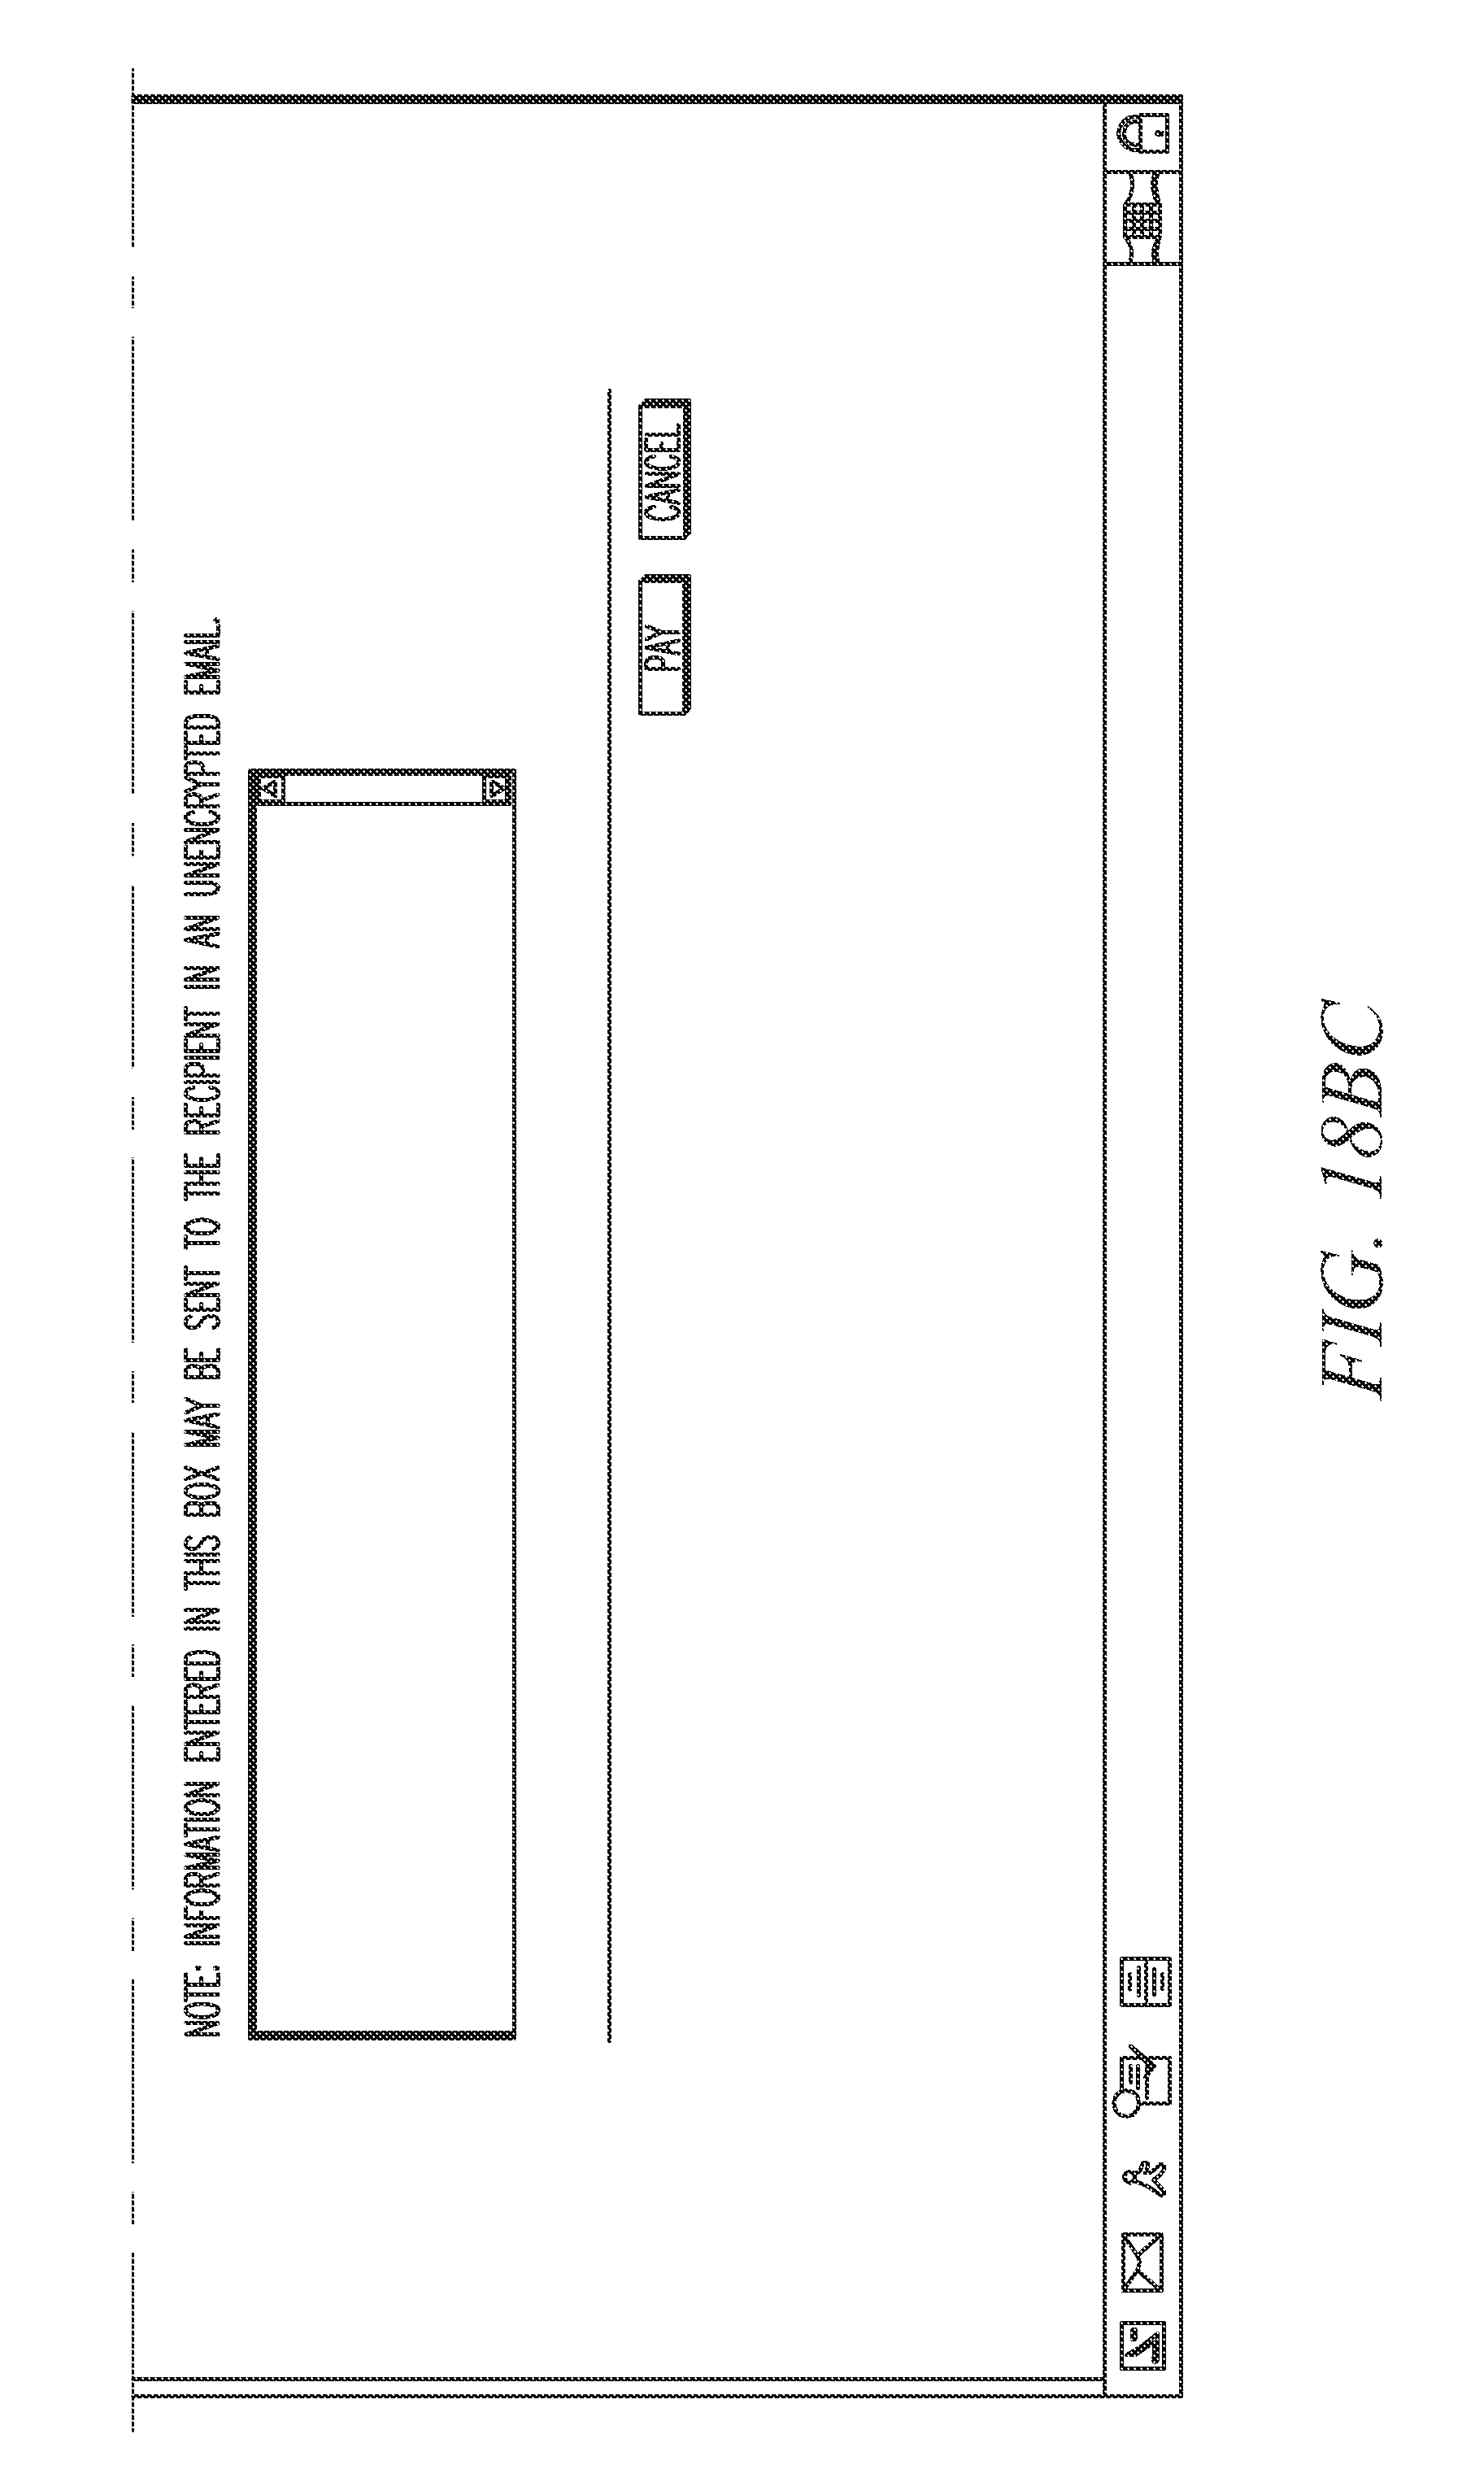 Invoice Printers Pdf Patent Us  Invoicing System  Google Patents Invoice Word Template Word with Capital Receipts Definition Excel Patent Drawing Non Vat Invoice Template